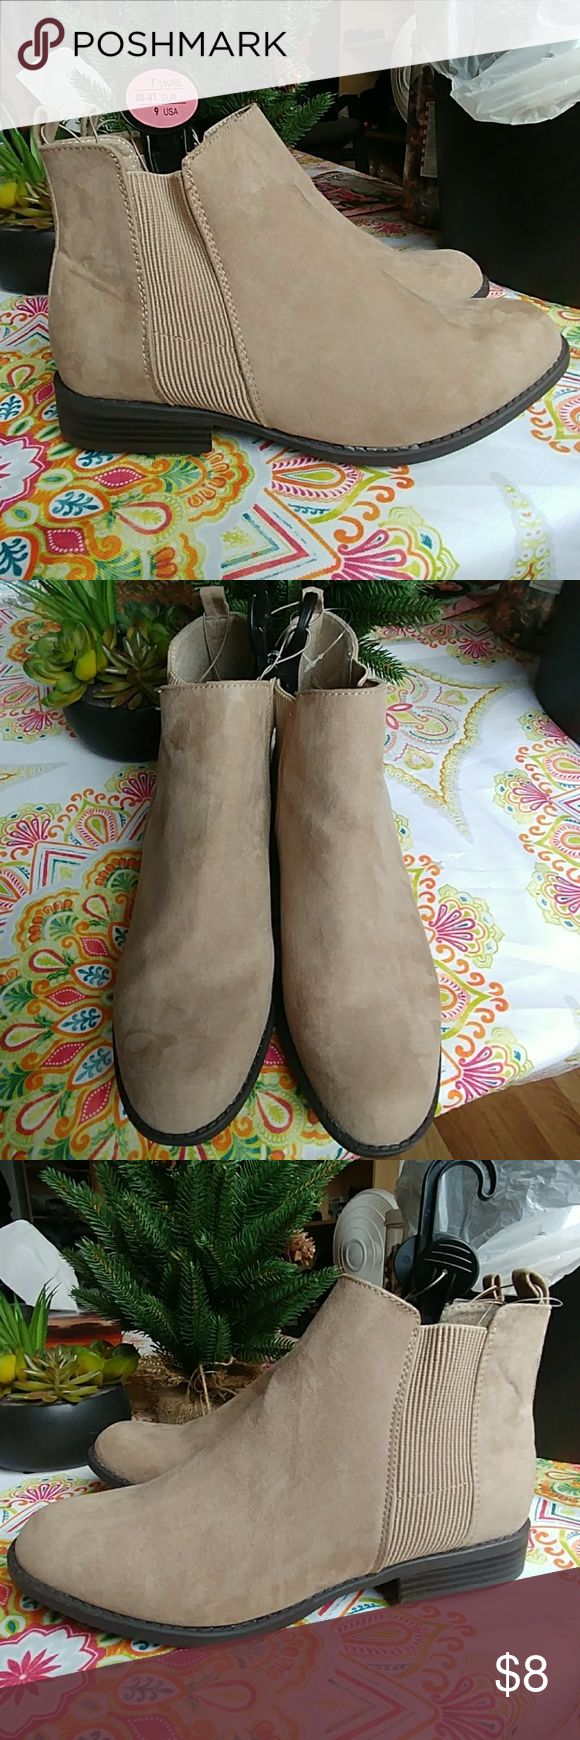 PRIMARK SUEDE BOOTIES-SIZE 9 US-NEVER WORN-NWOT About: -These booties have a suede like exterior and are smooth to the touch.  -Size 9 US Size 7 UK Size 40/41 EU -Never worn! Tried on. Tag was taken off but comes with original hanger indicating size.  -They rest about an inch over the ankle.  -Heel is an inch thick.   Need more pictures? Have questions? Anything else about these boots; feel free to leave a comment below and I will do my best to get back asap. Primark Shoes Ankle Boots…